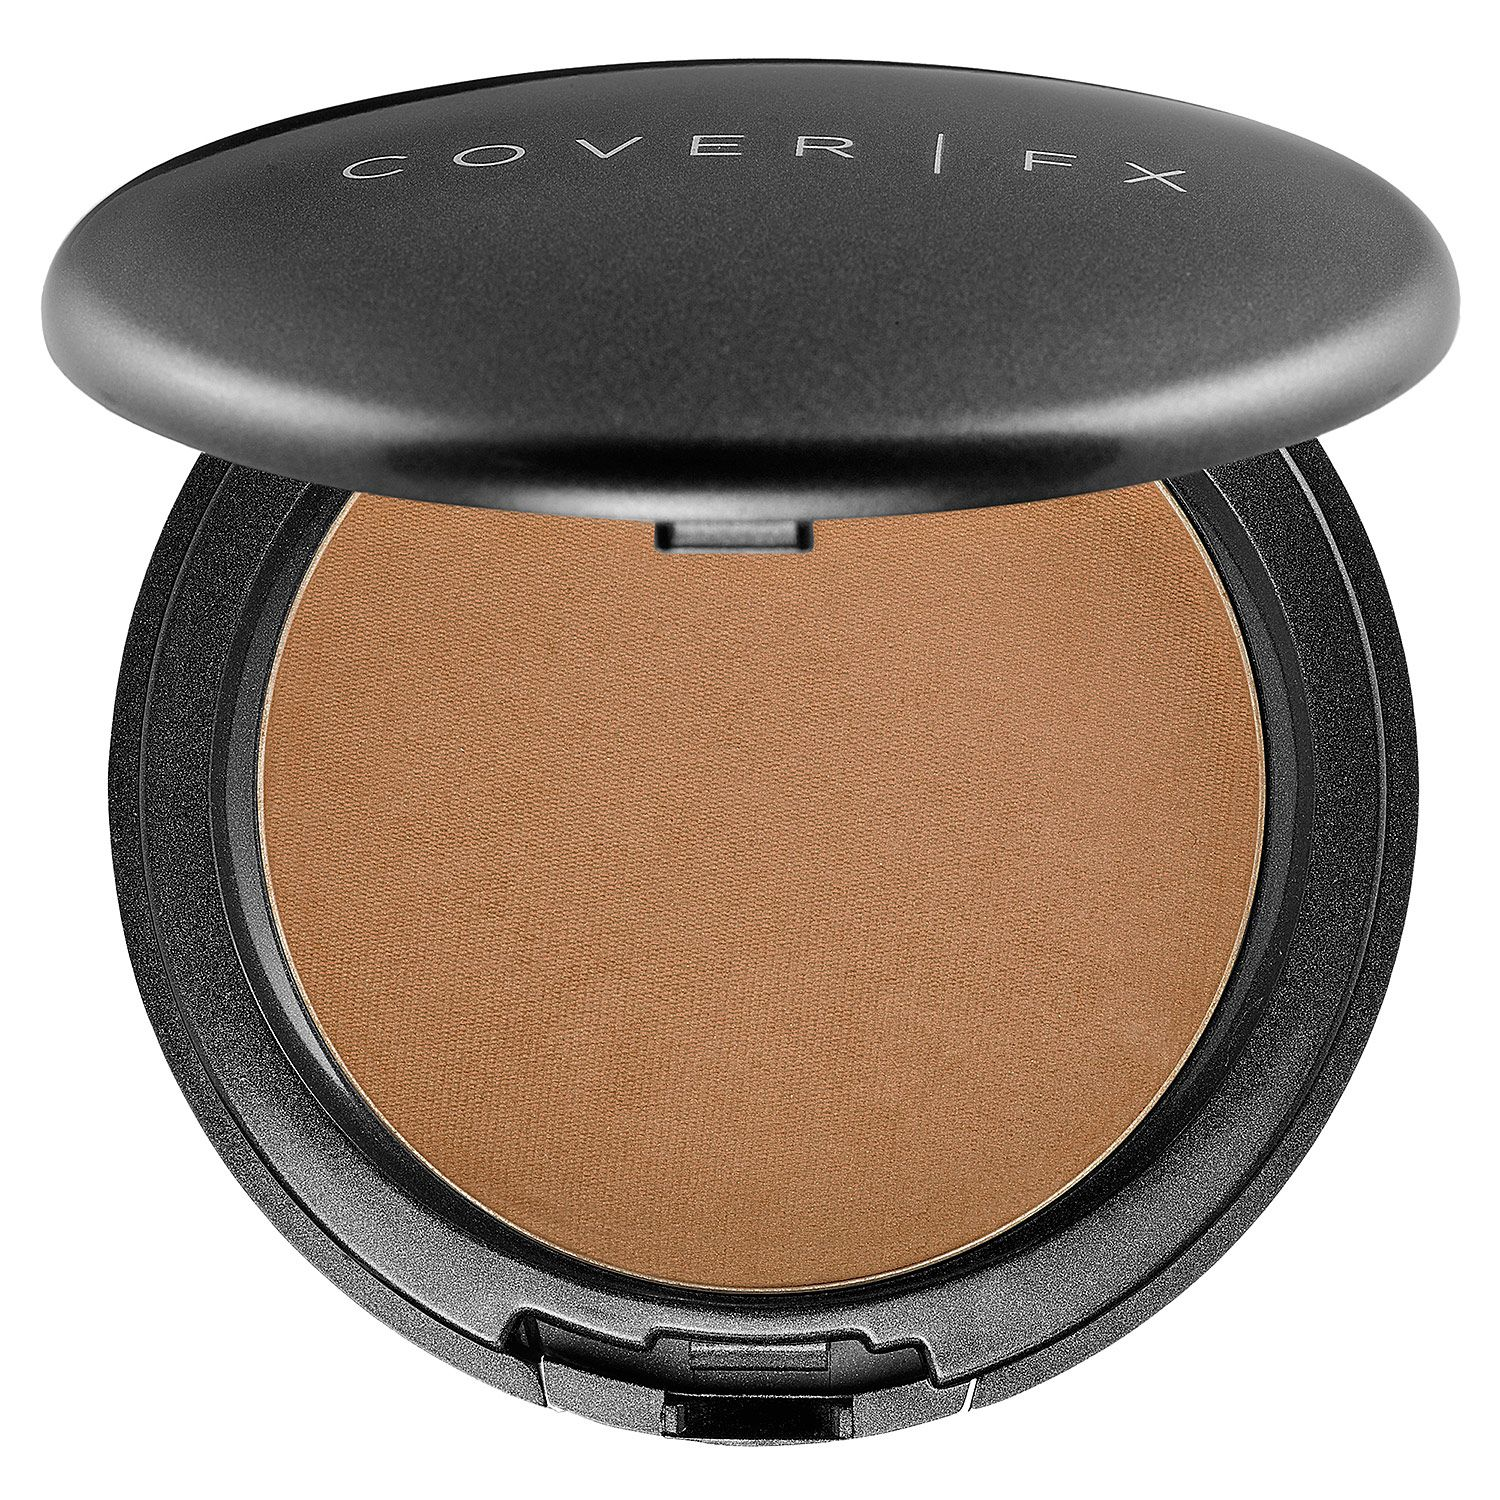 Shop Cover FX's Bronzer at Sephora. It gives skin a